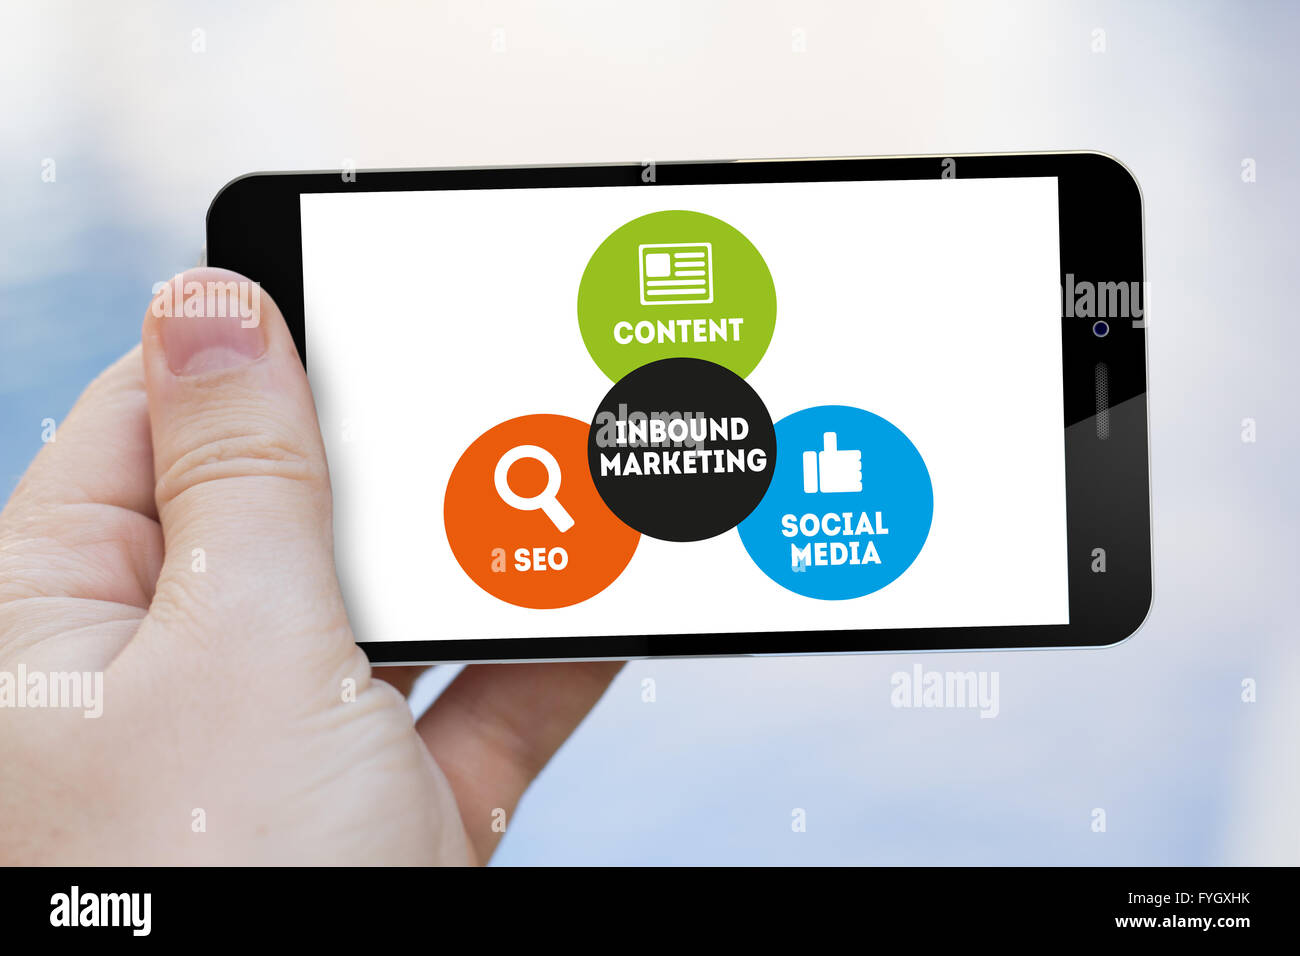 Business concept: Smartphone witn Inbound Marketing scheme on the screen. All graphics are made up. - Stock Image